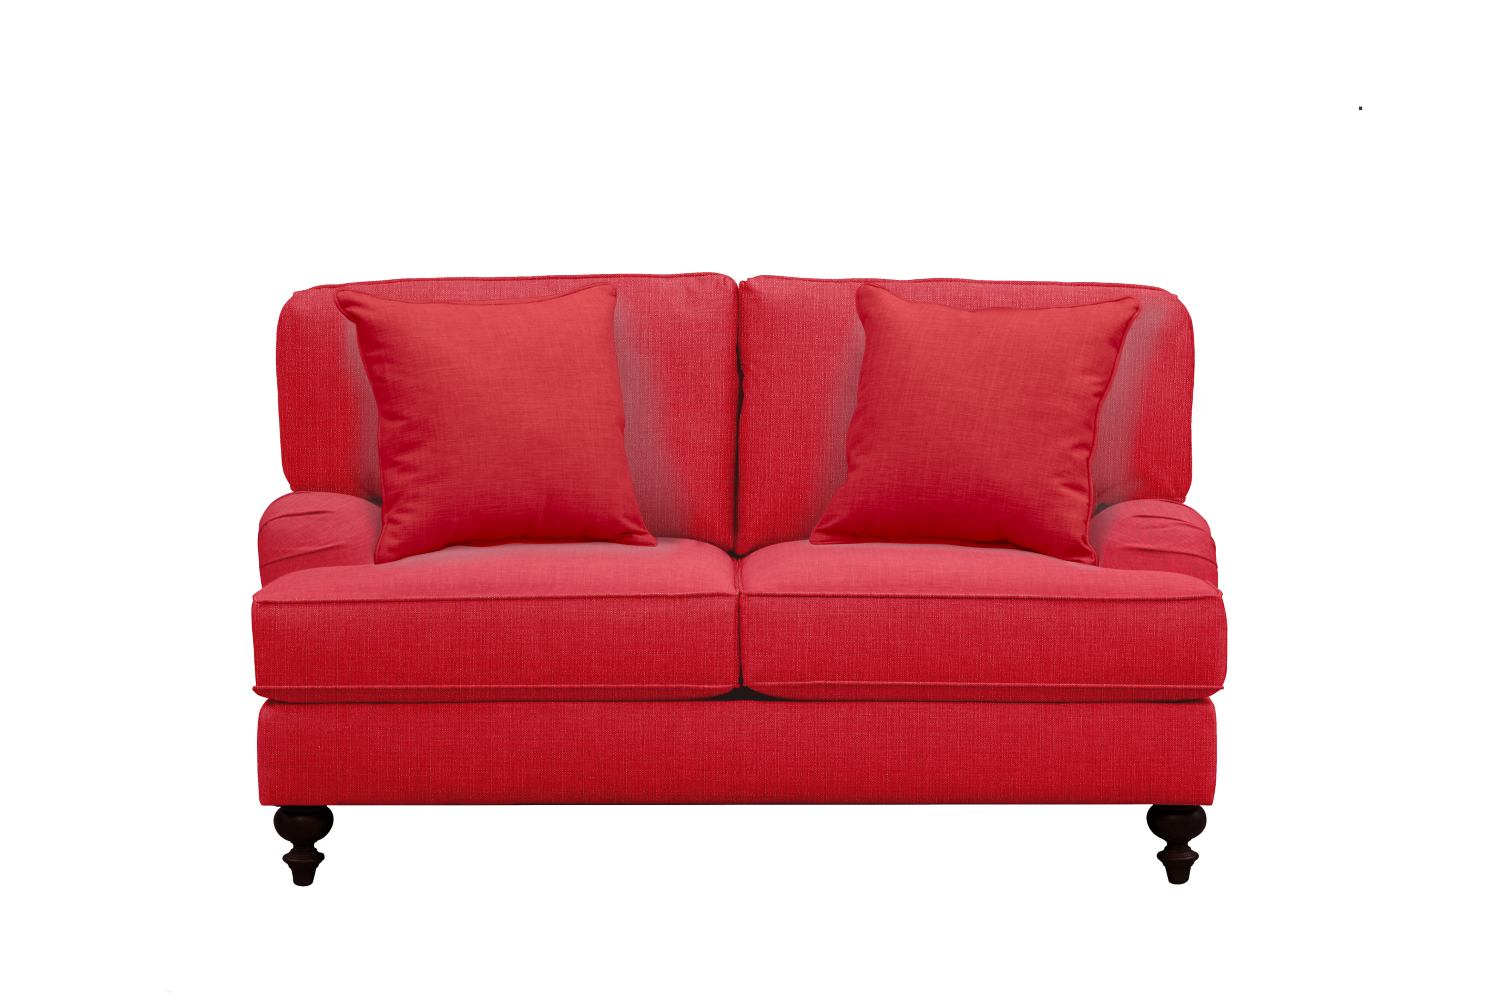 "Living Room Furniture - Avery English Arm Sofa 62"" Depalma Cherry w/ Depalma Cherry Pillow"